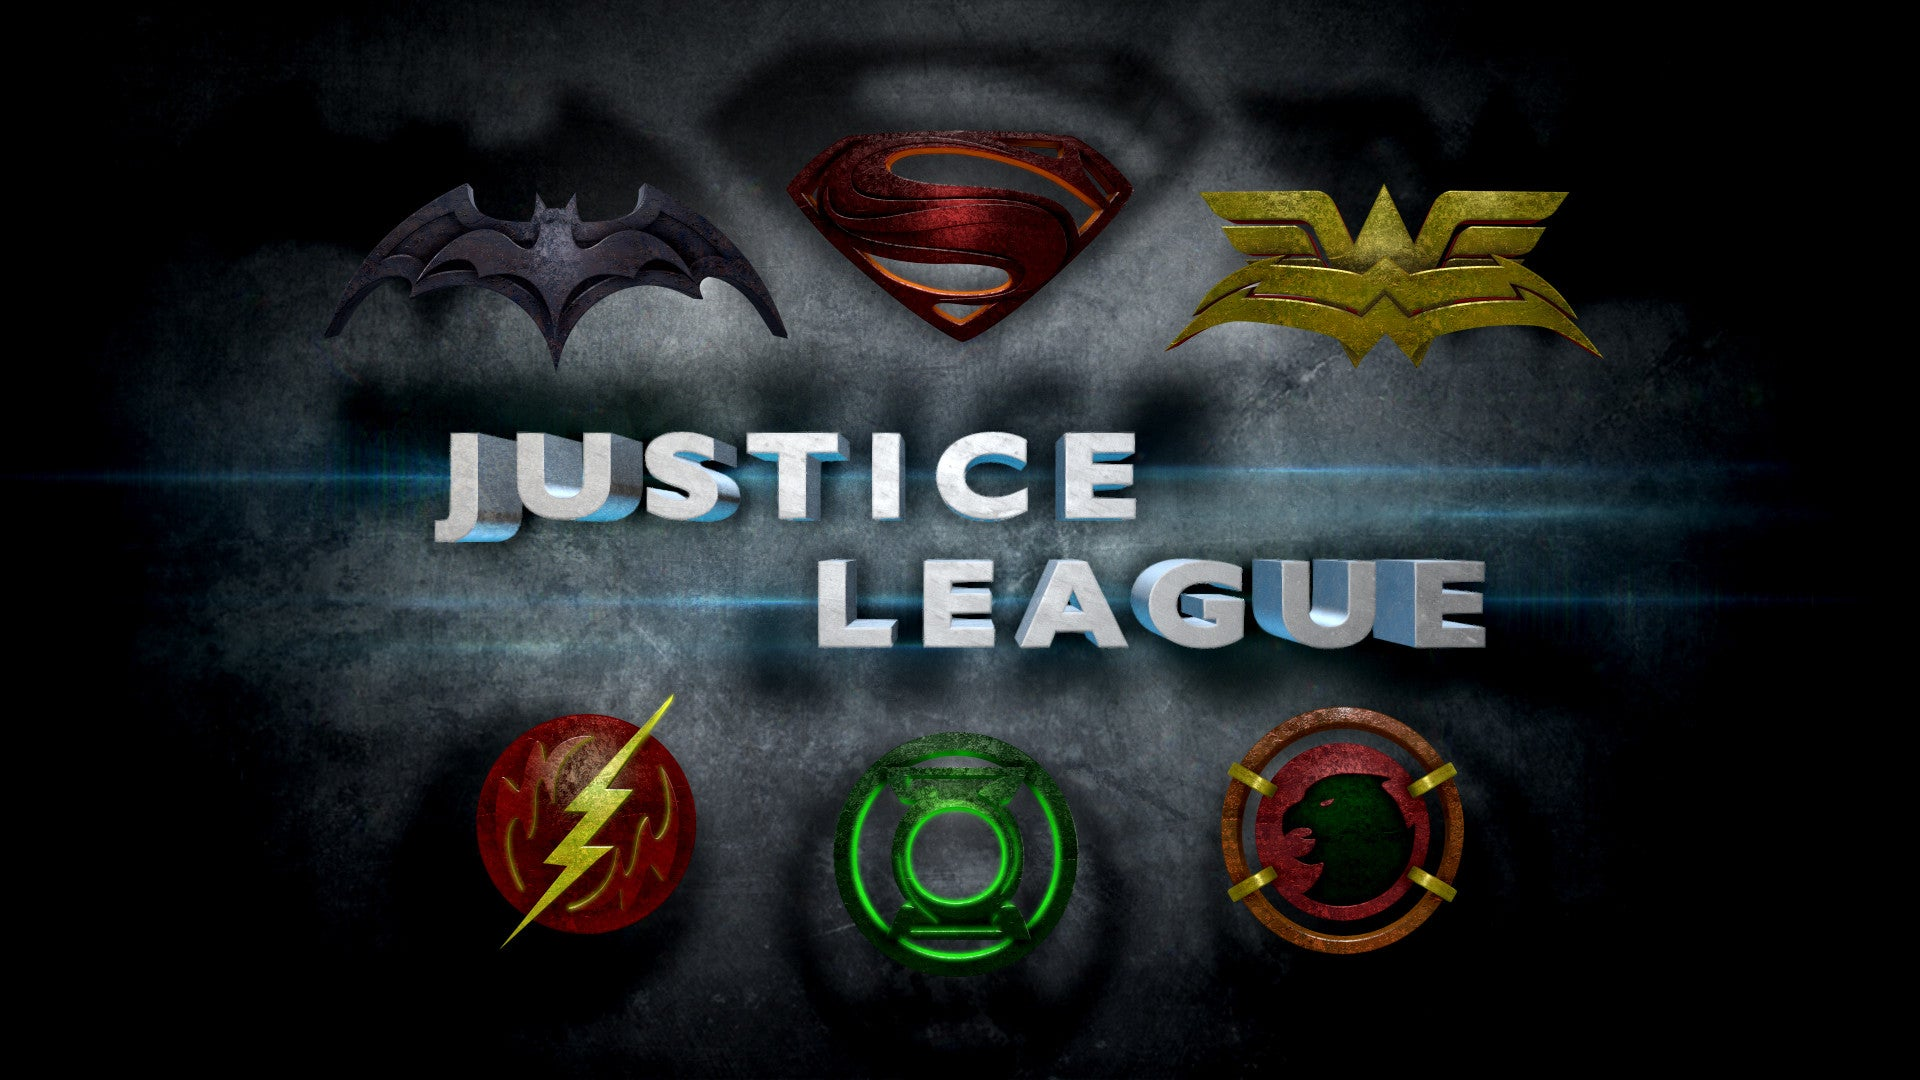 Justice League Movie Logos In the Style of Man of SteelJustice League Emblem